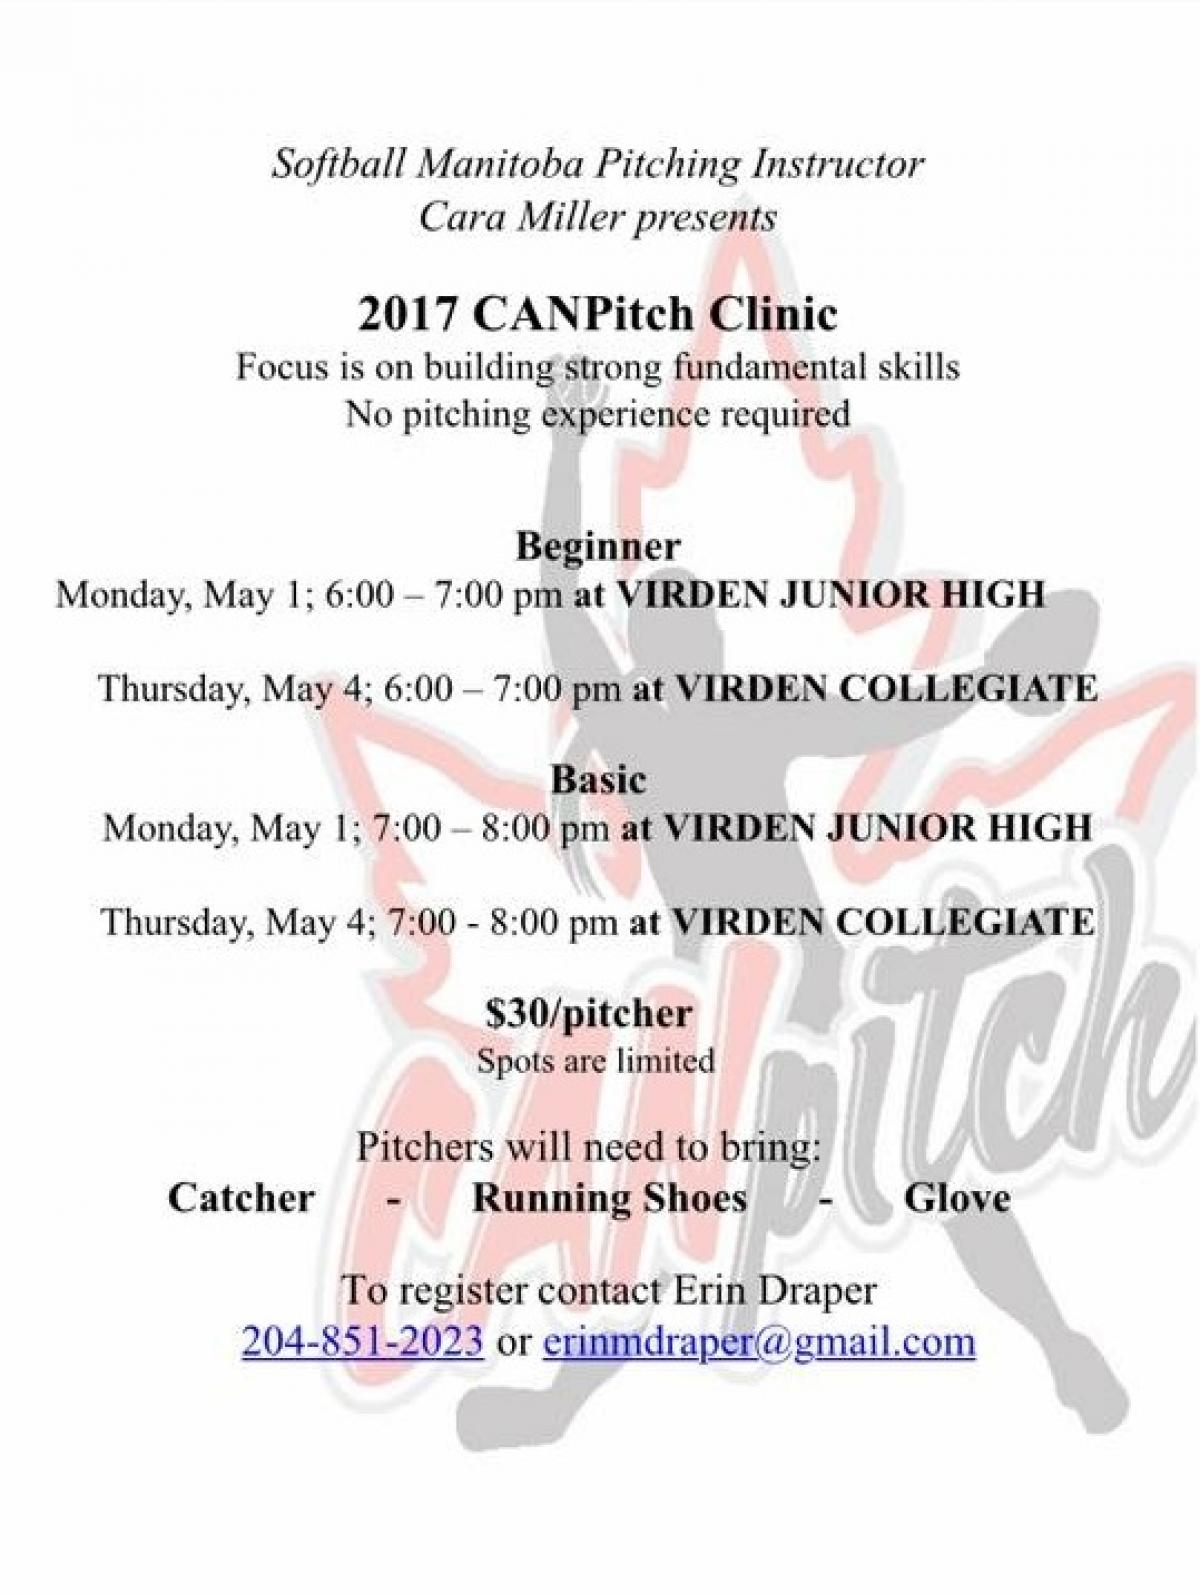 CANPitch Clinic for Softball